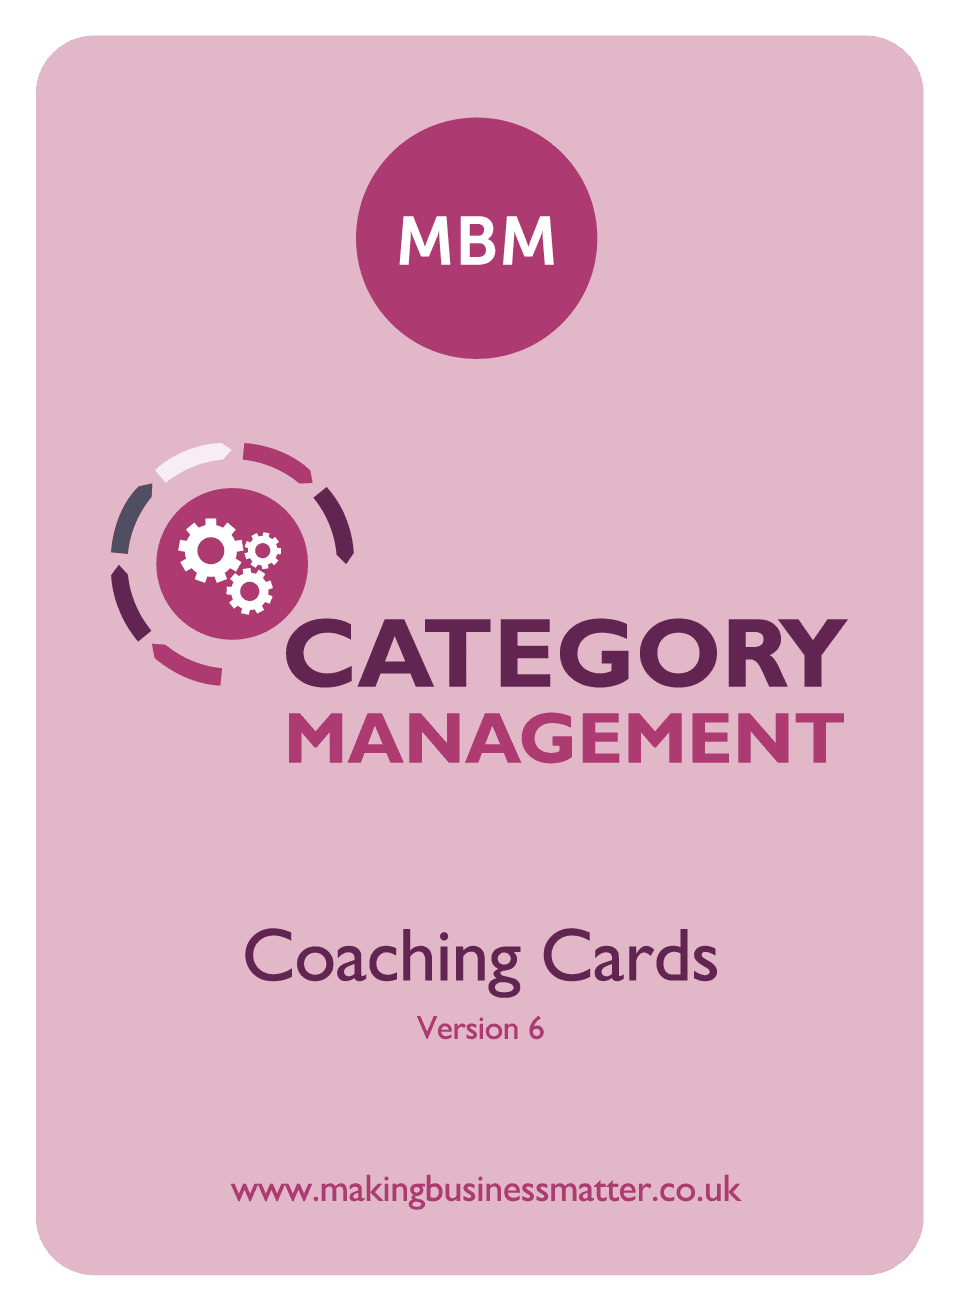 Front of category management coaching card